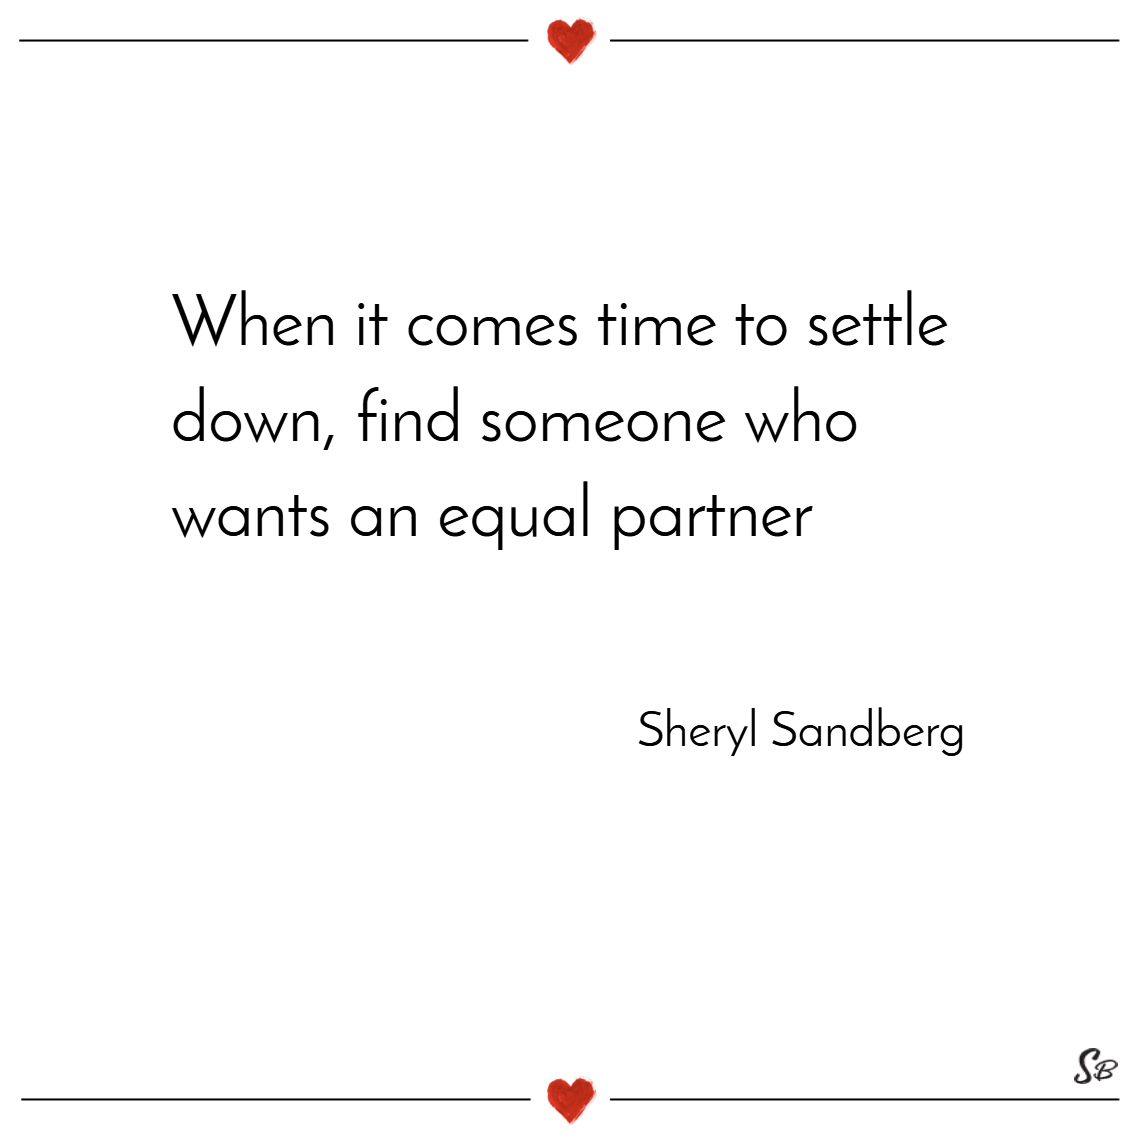 When it comes time to settle down, find someone wh